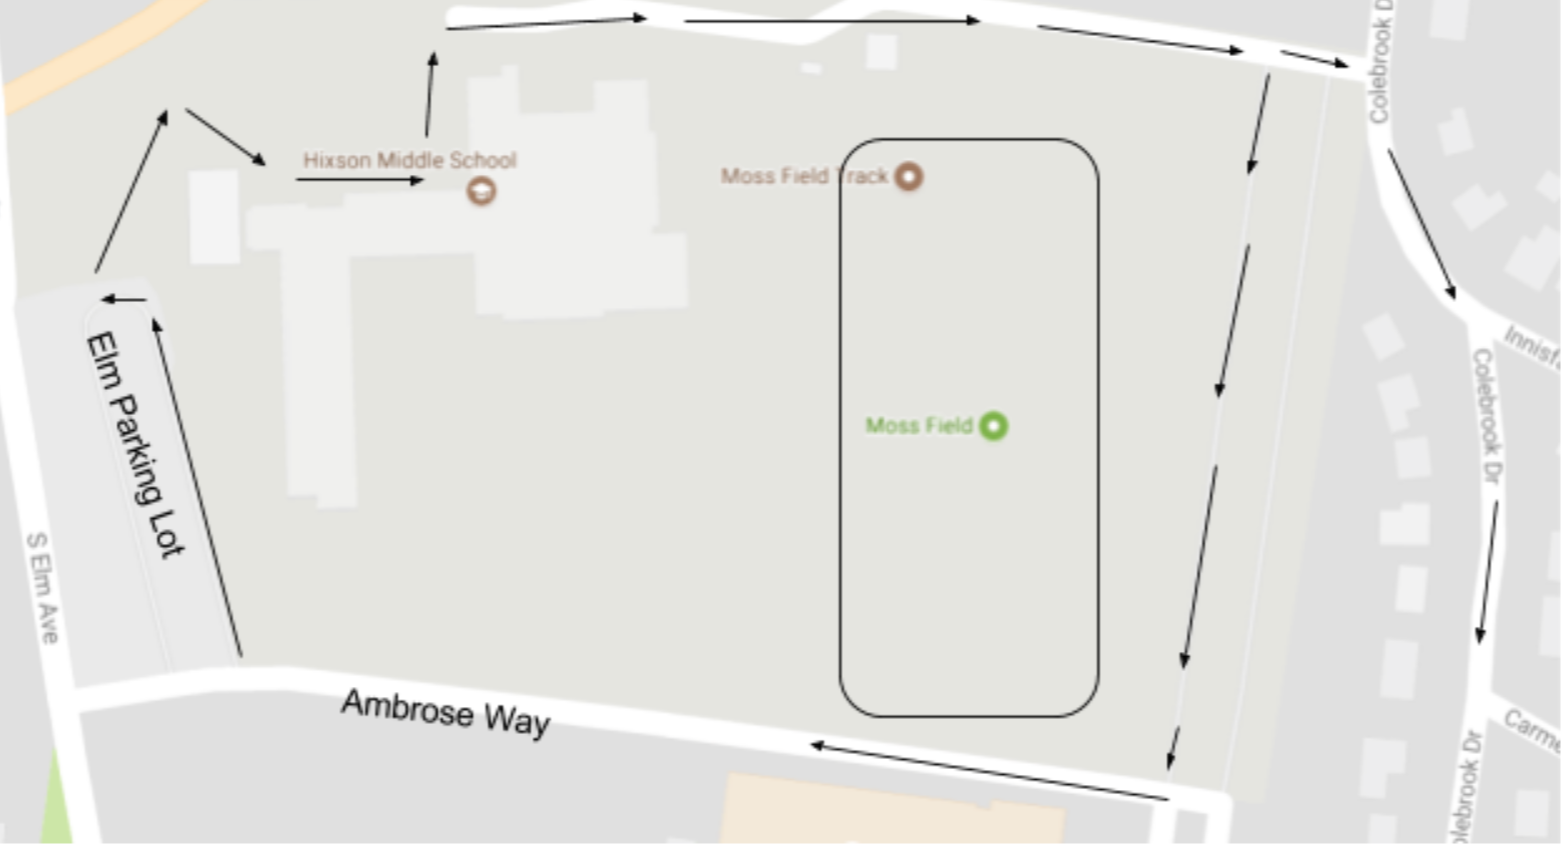 Hixson arrival and dismissal map